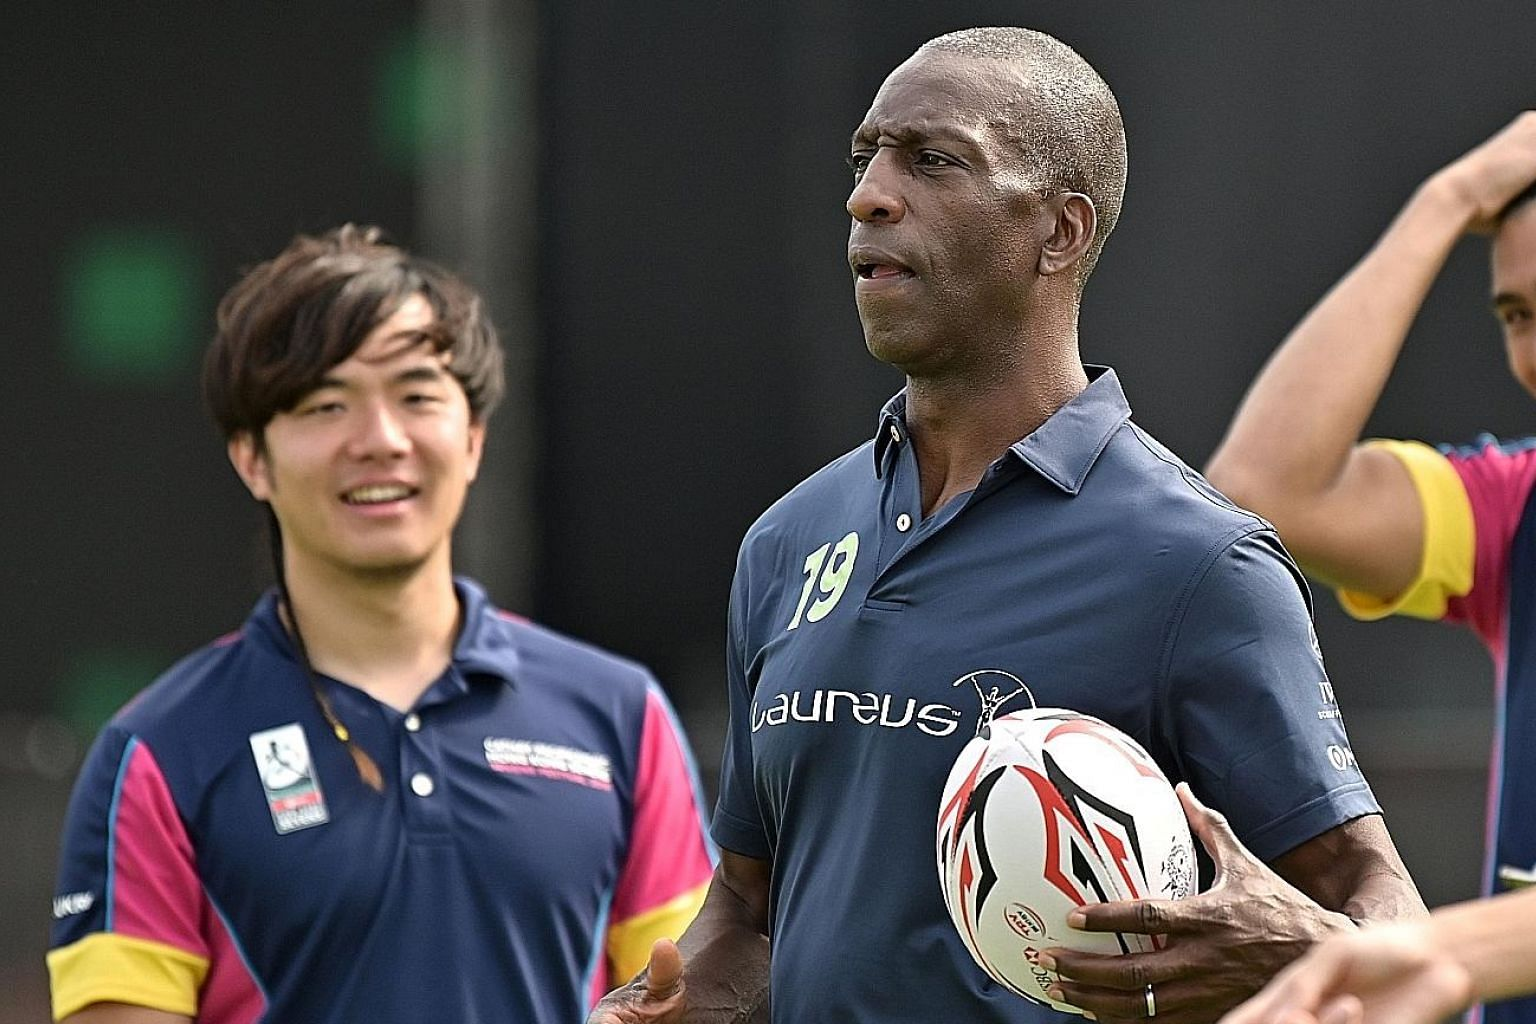 Former world and Olympic track champion Michael Johnson during a promotional event for the Hong Kong Rugby Sevens. The sport is gaining in popularity in the United States after its Olympic debut in 2016.